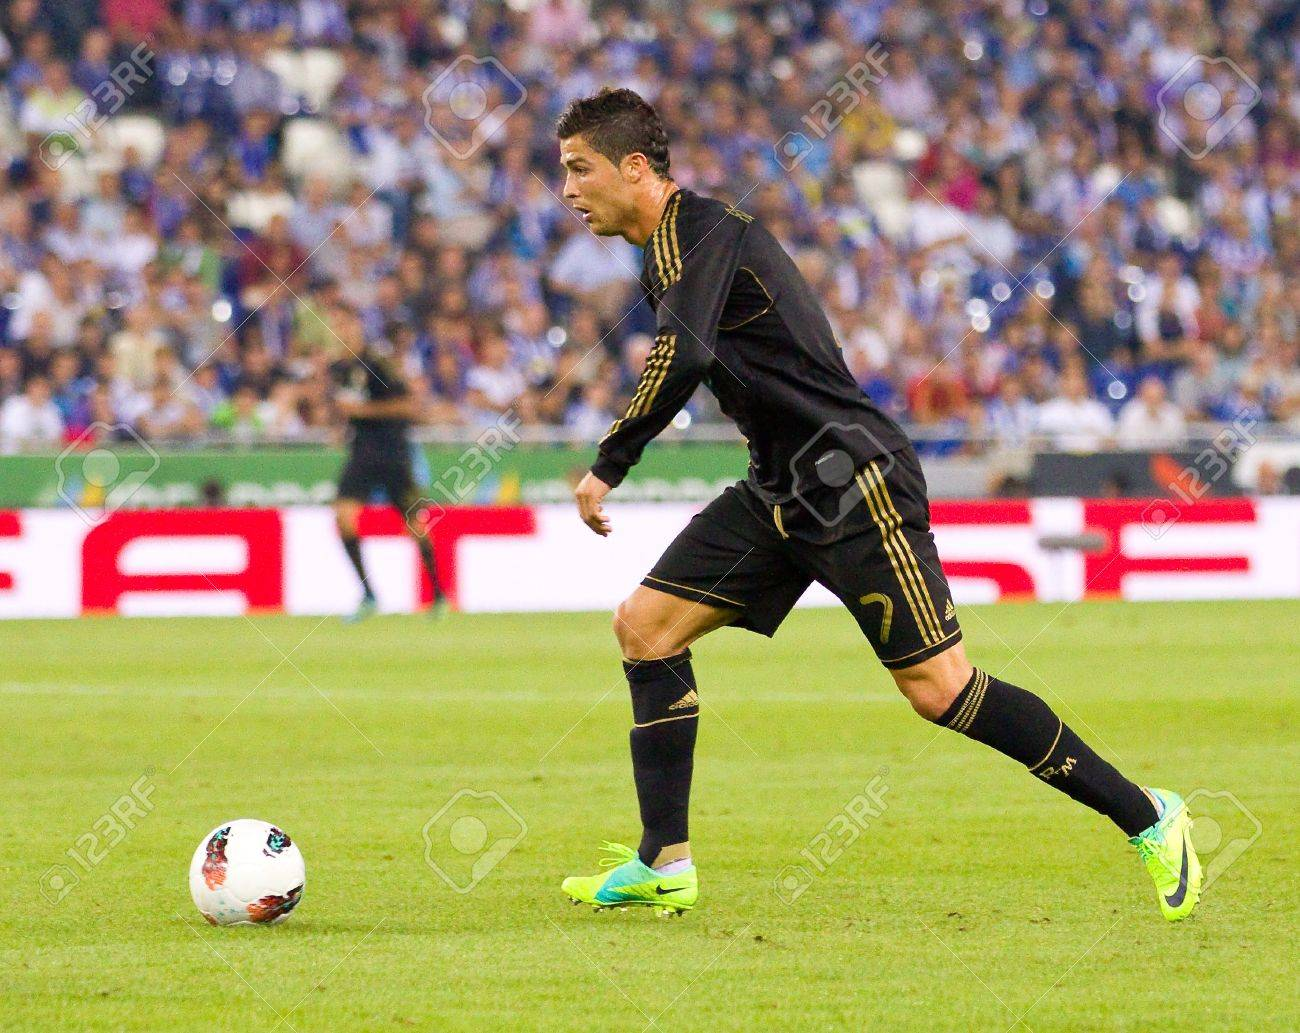 1fe2fa9ce Cristiano Ronaldo in action during the Spanish League match between RCD  Espanyol and Real Madrid